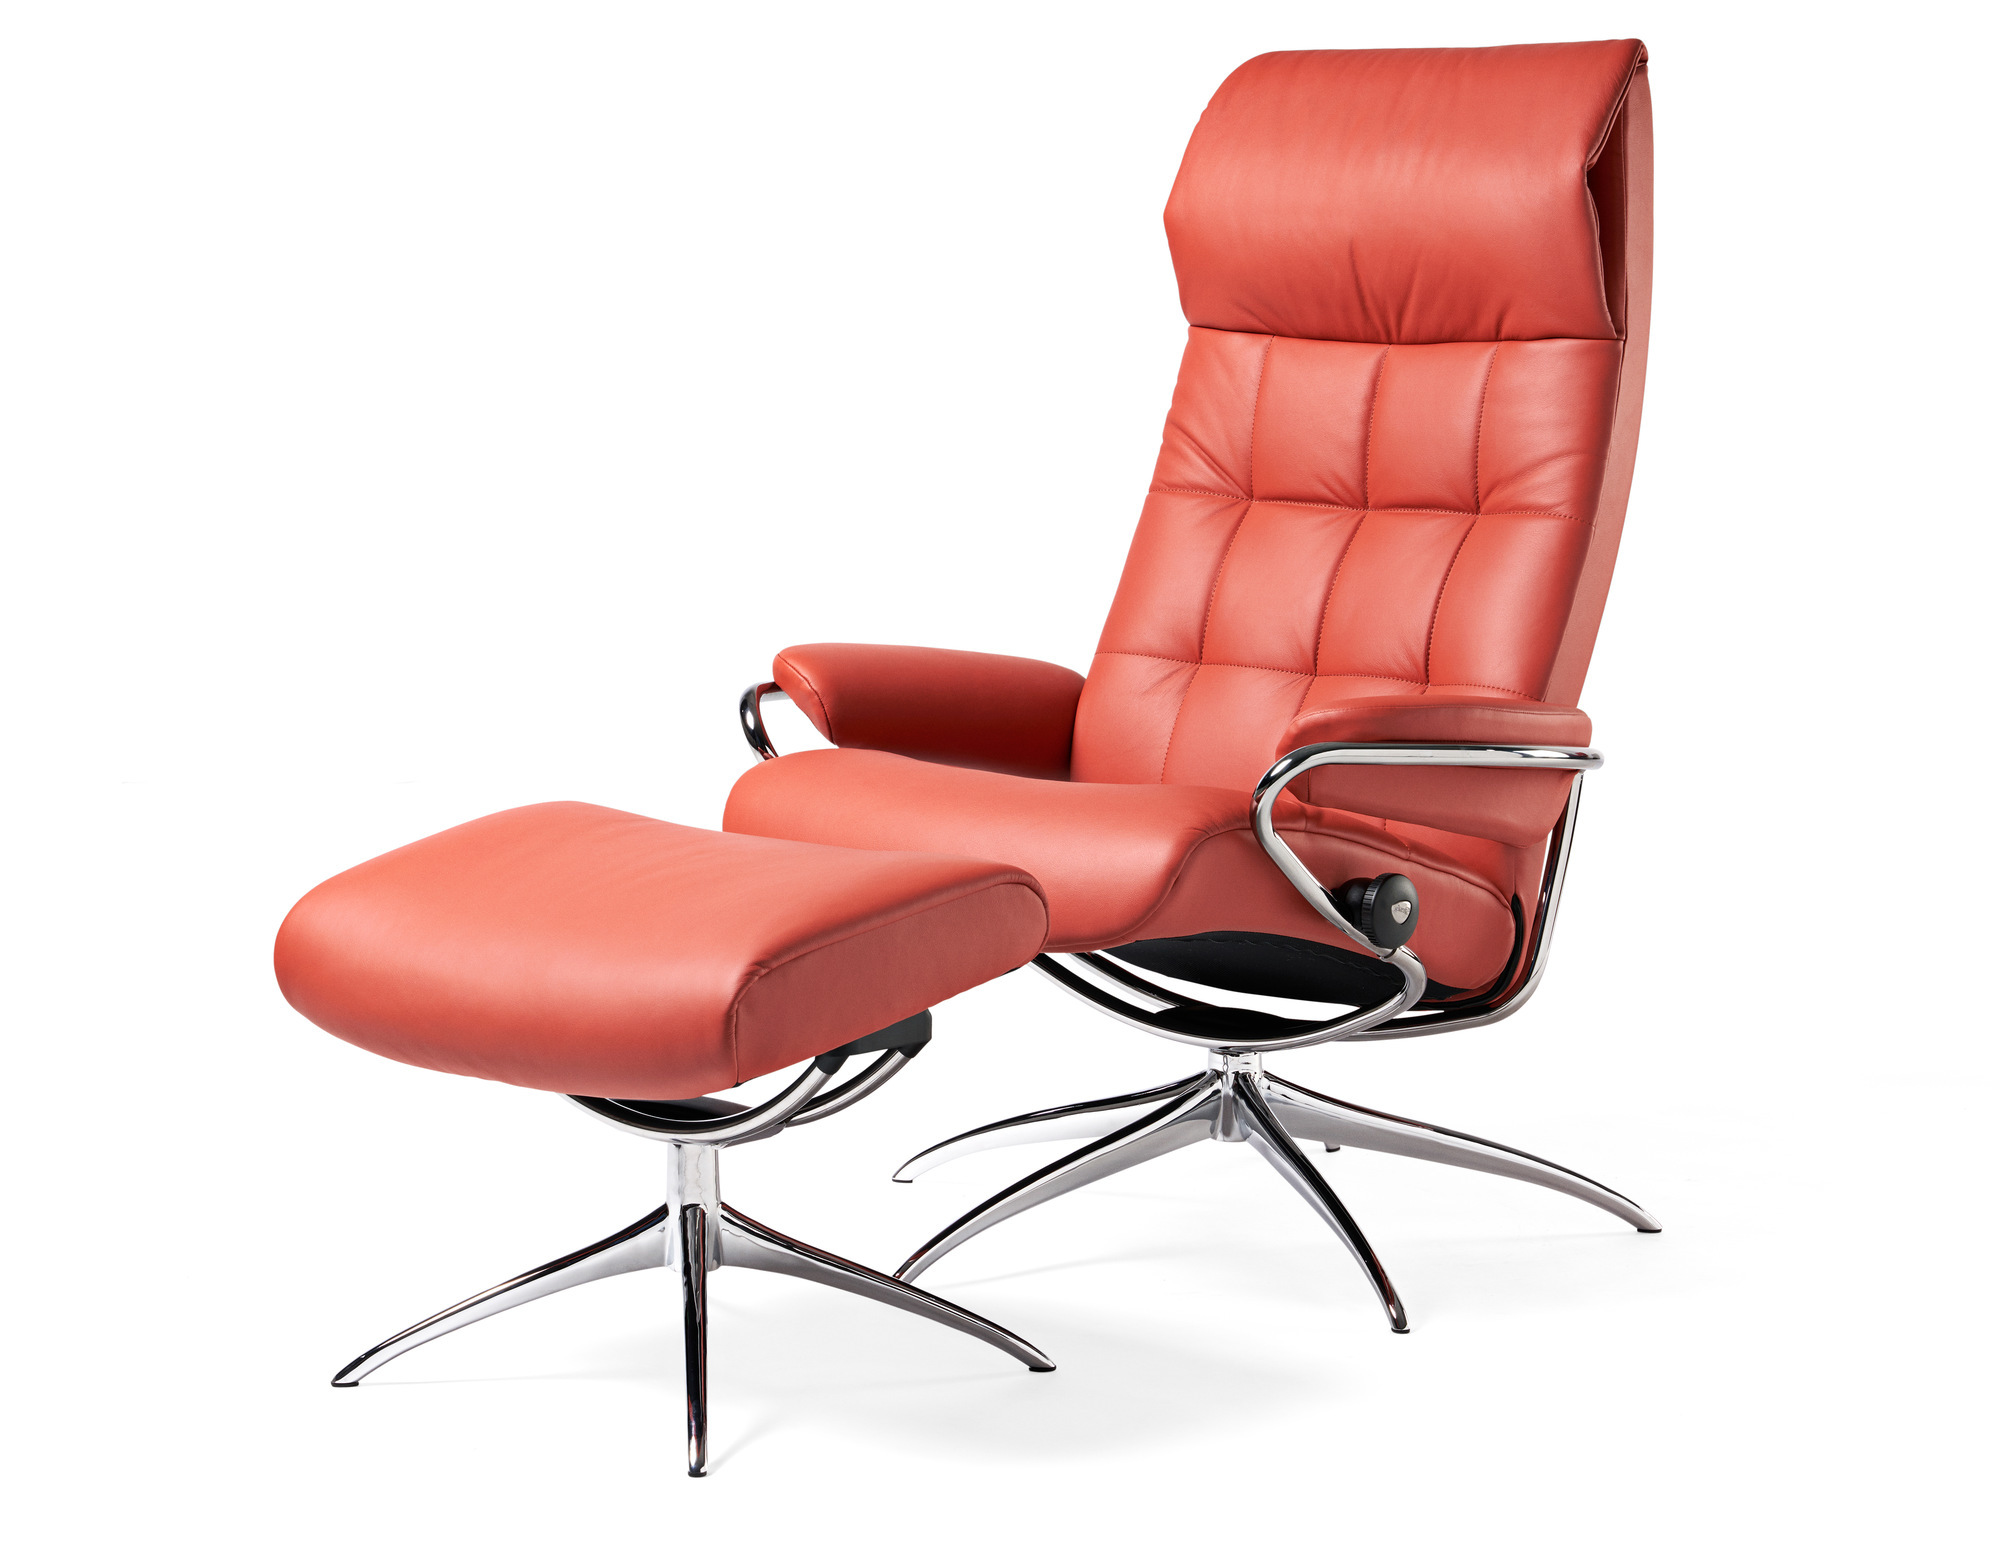 Stressless Sessel Paris High Back Stressless Retro Sessel Aktion Inkl Hocker Solovivo